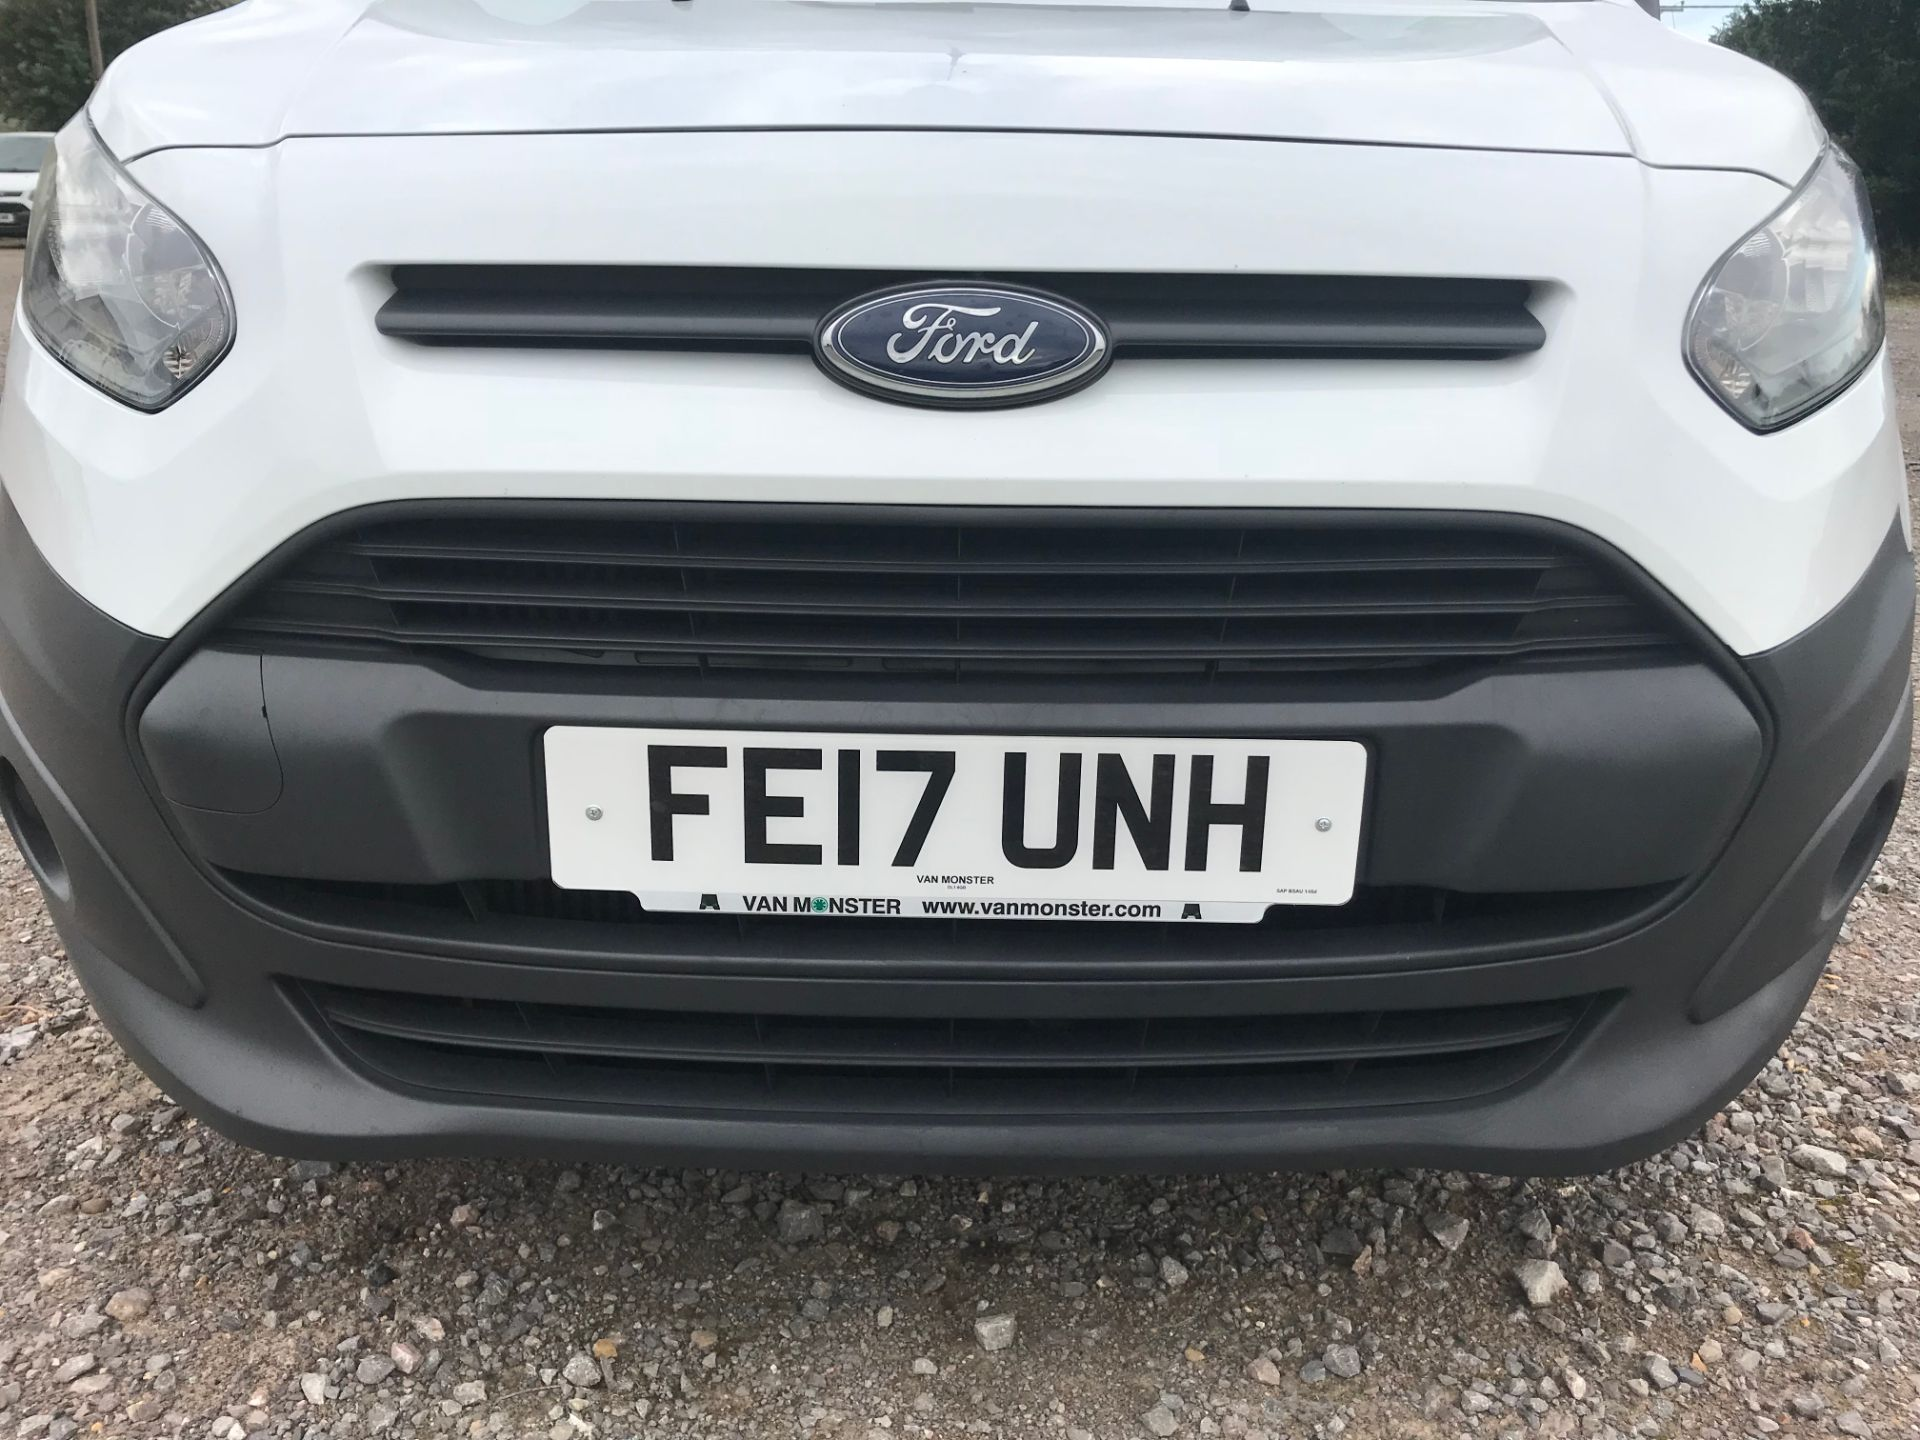 2017 Ford Transit Connect 1.5 Tdci 75Ps Van (FE17UNH) Image 28